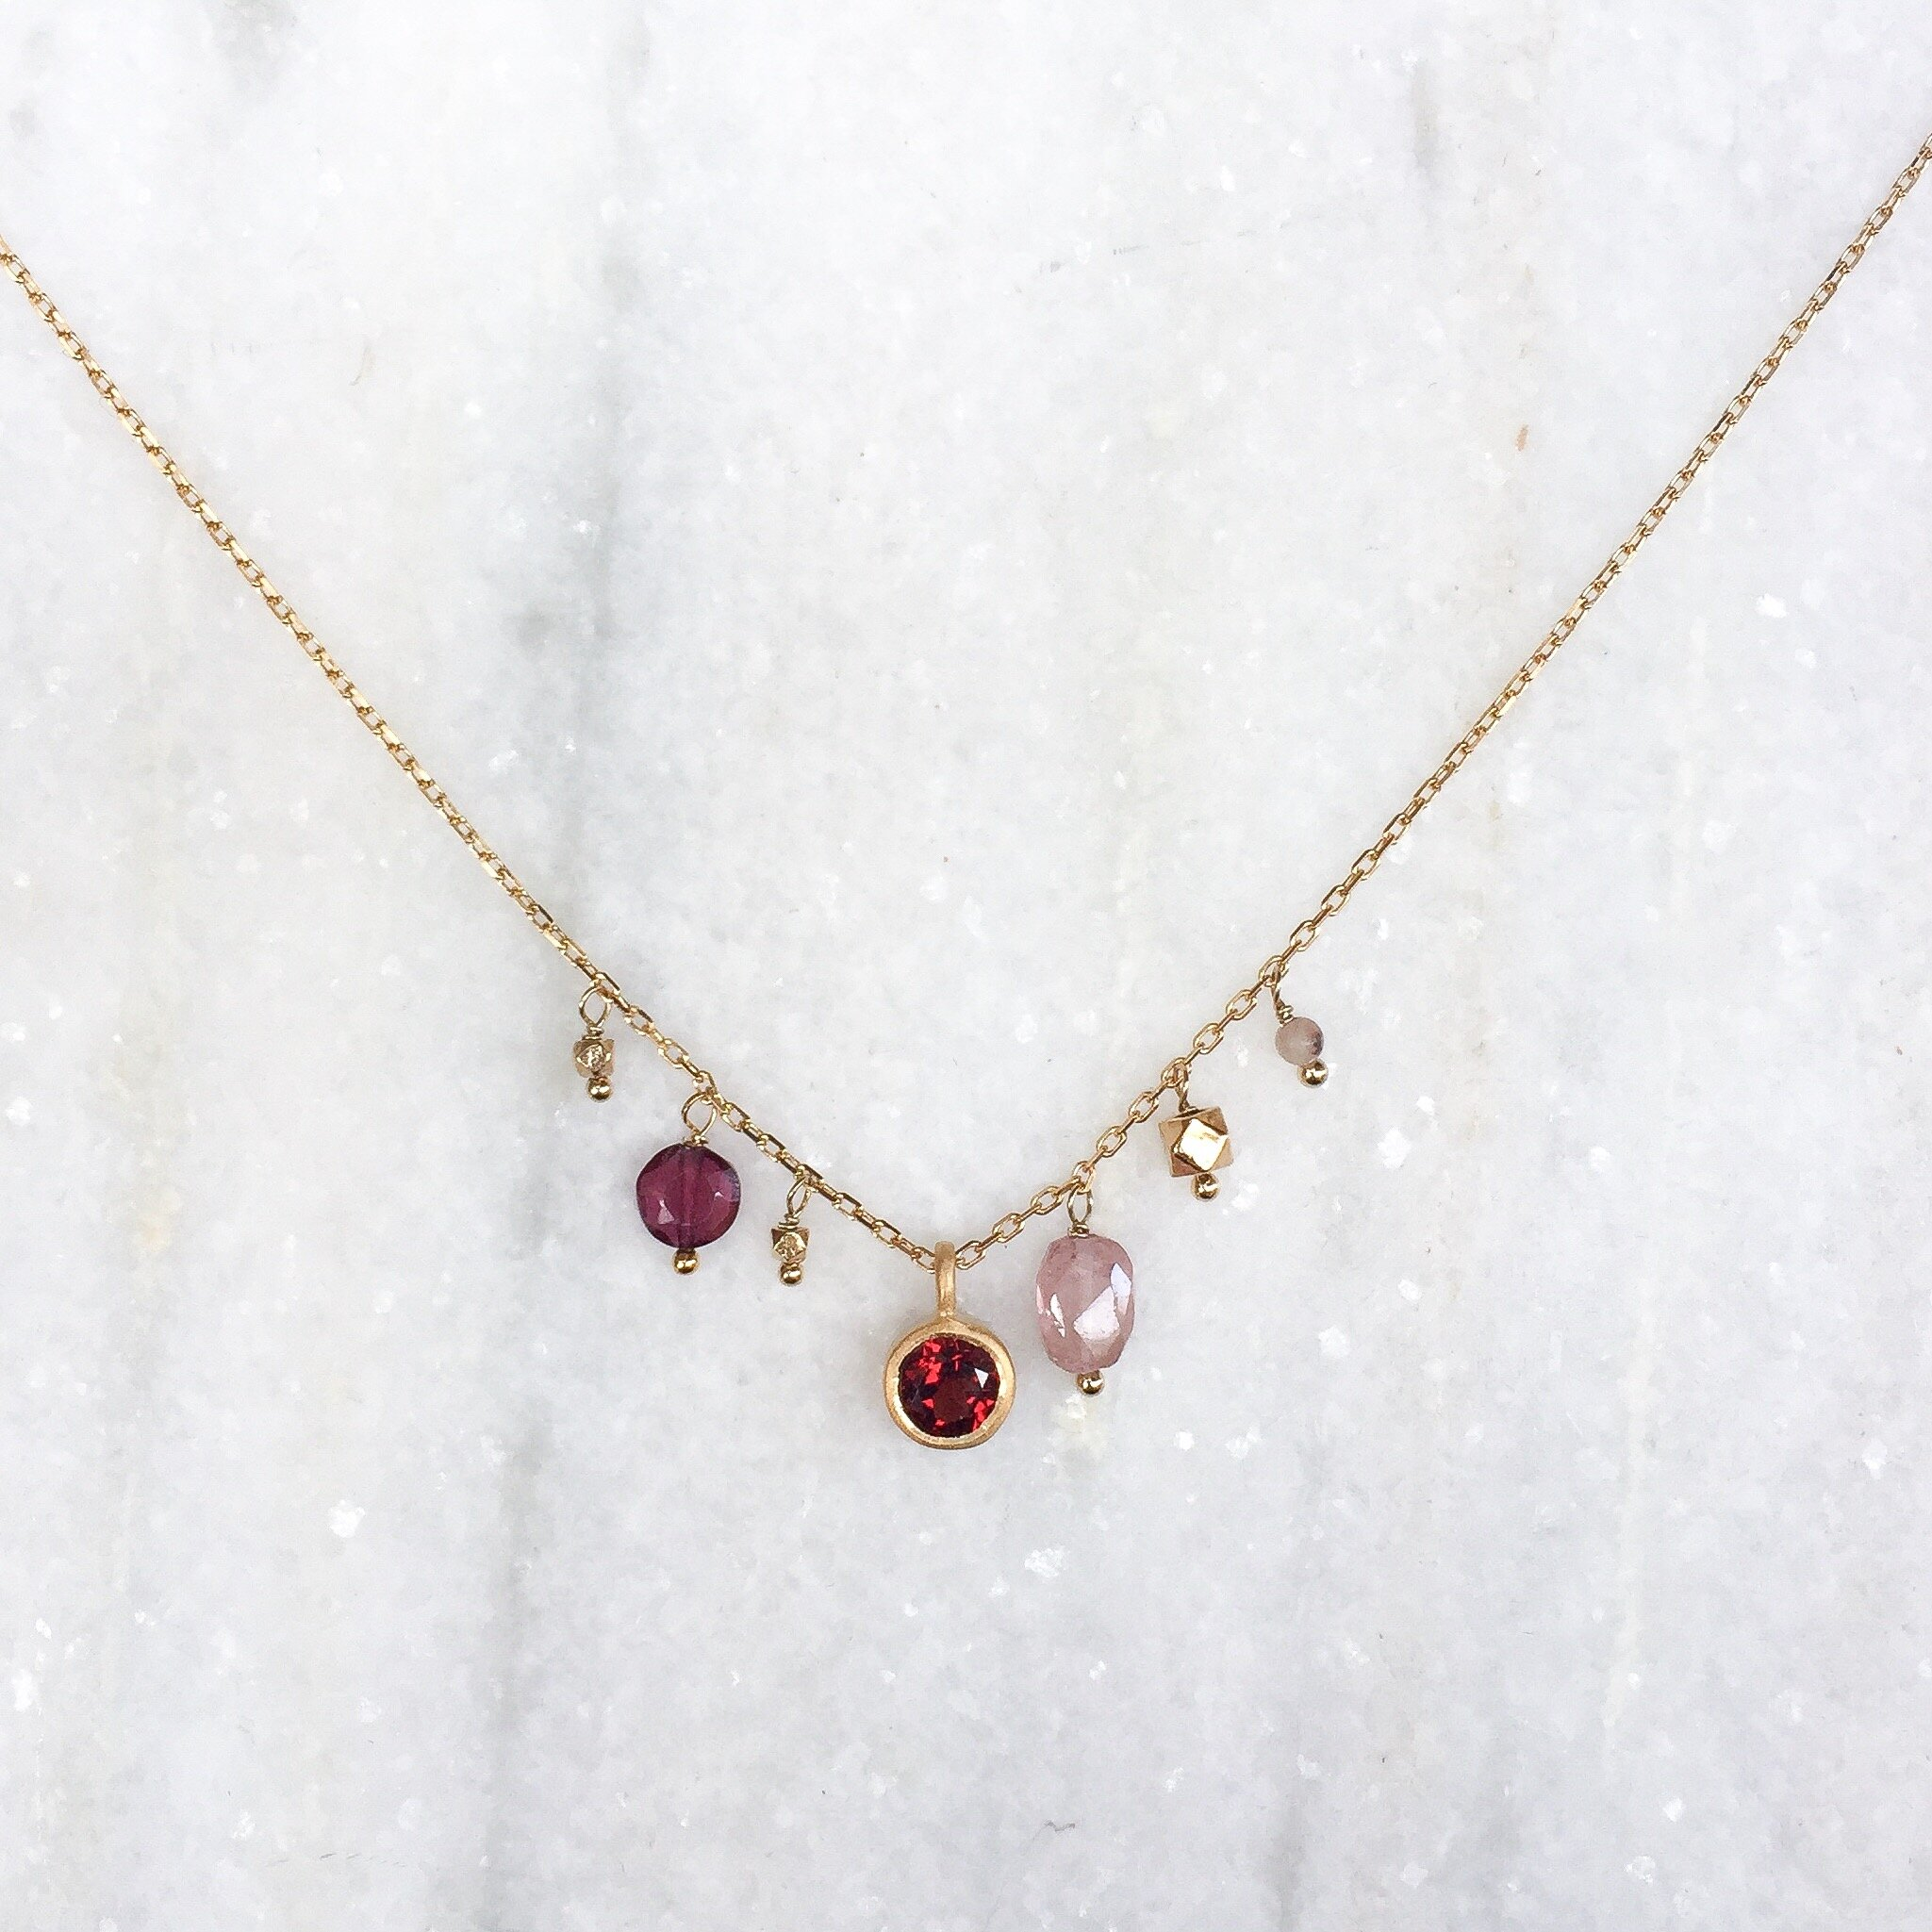 Rhodium-plated 925 Silver Precious Pendant with 18 Necklace Jewels Obsession Precious Necklace